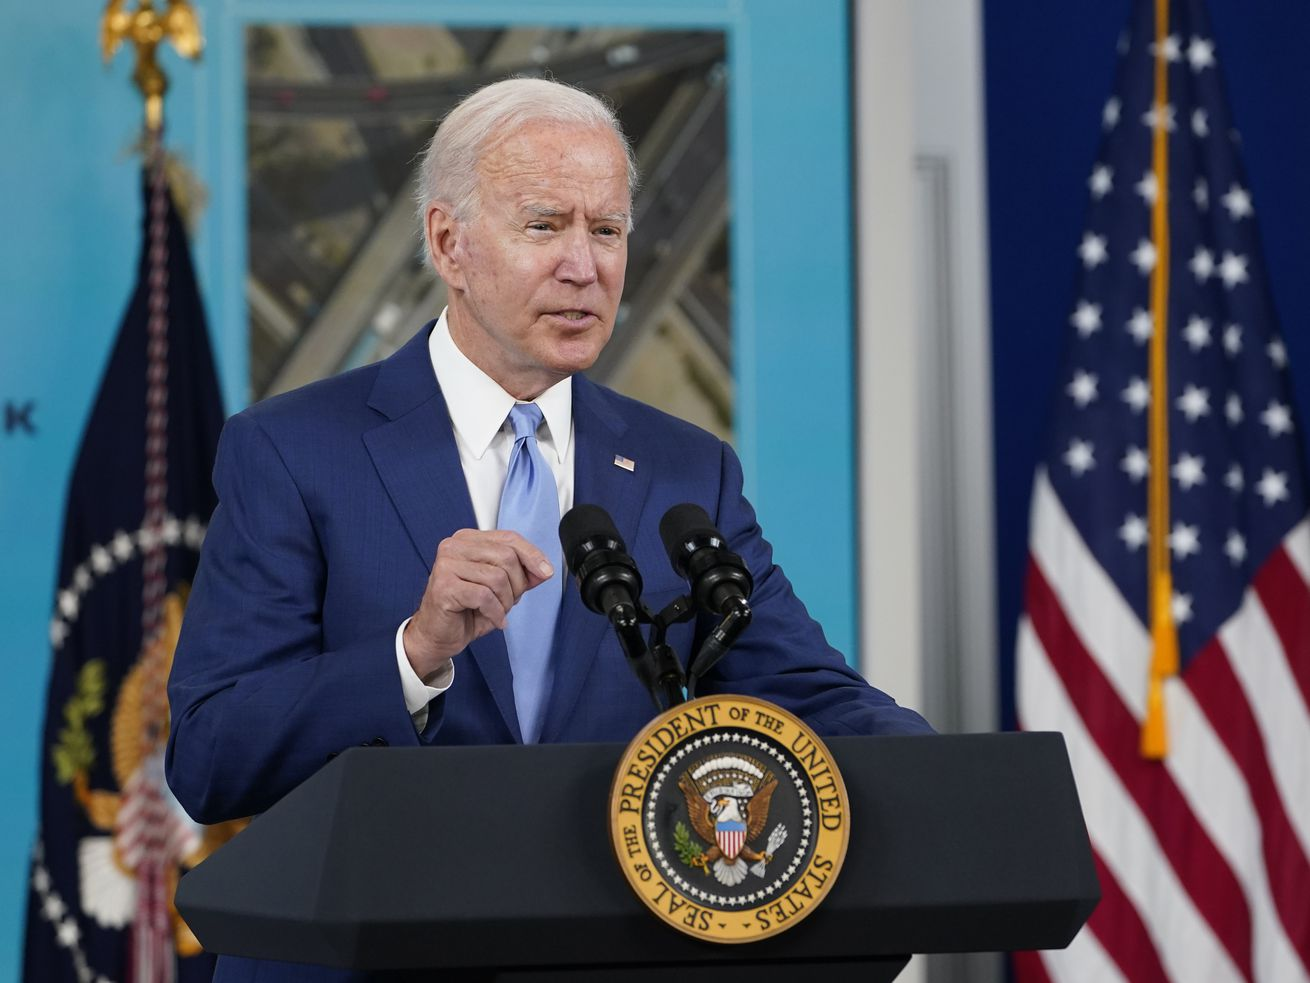 In this Oct. 8, 2021, file photo President Joe Biden speaks about the September jobs report from the South Court Auditorium on the White House campus in Washington. Biden is set to hold his first bilateral talks as president with an African leader on Thursday, hosting Kenyan President Uhuru Kenyatta as war and a humanitarian crisis roil neighboring Ethiopia, according to the White House.